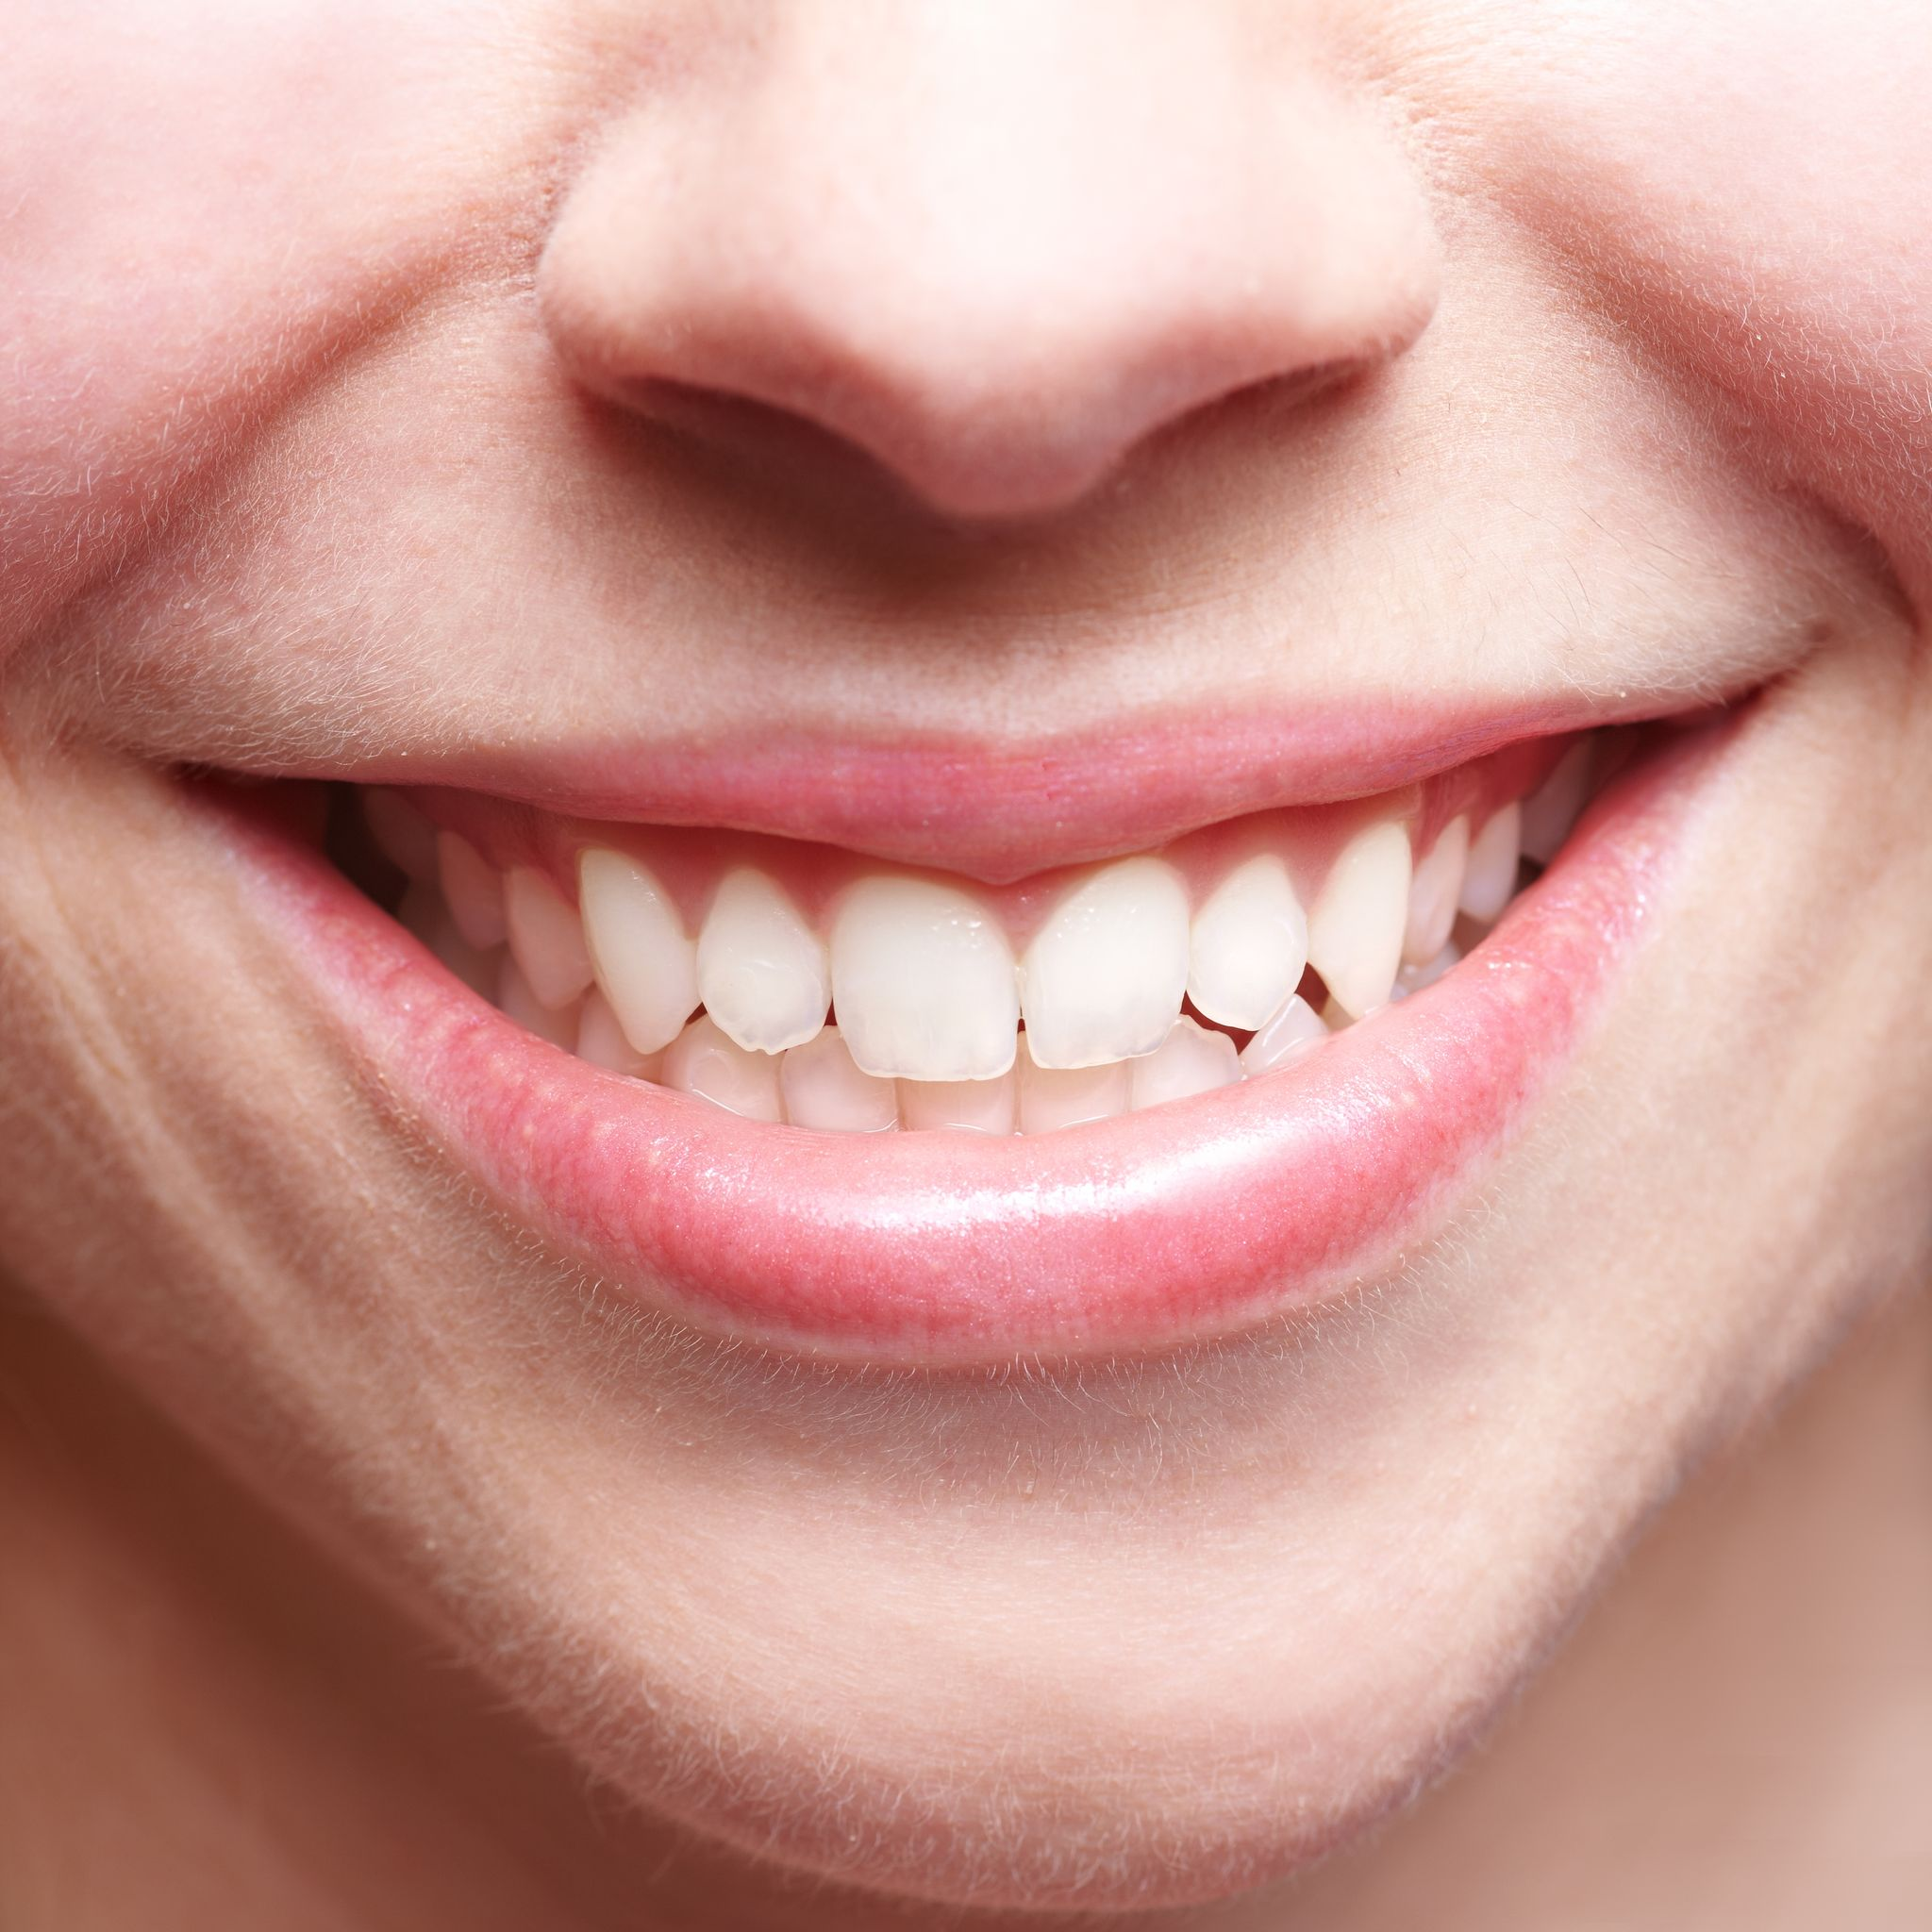 14754696 - close-up of smiling female mouth with bright teeth showing